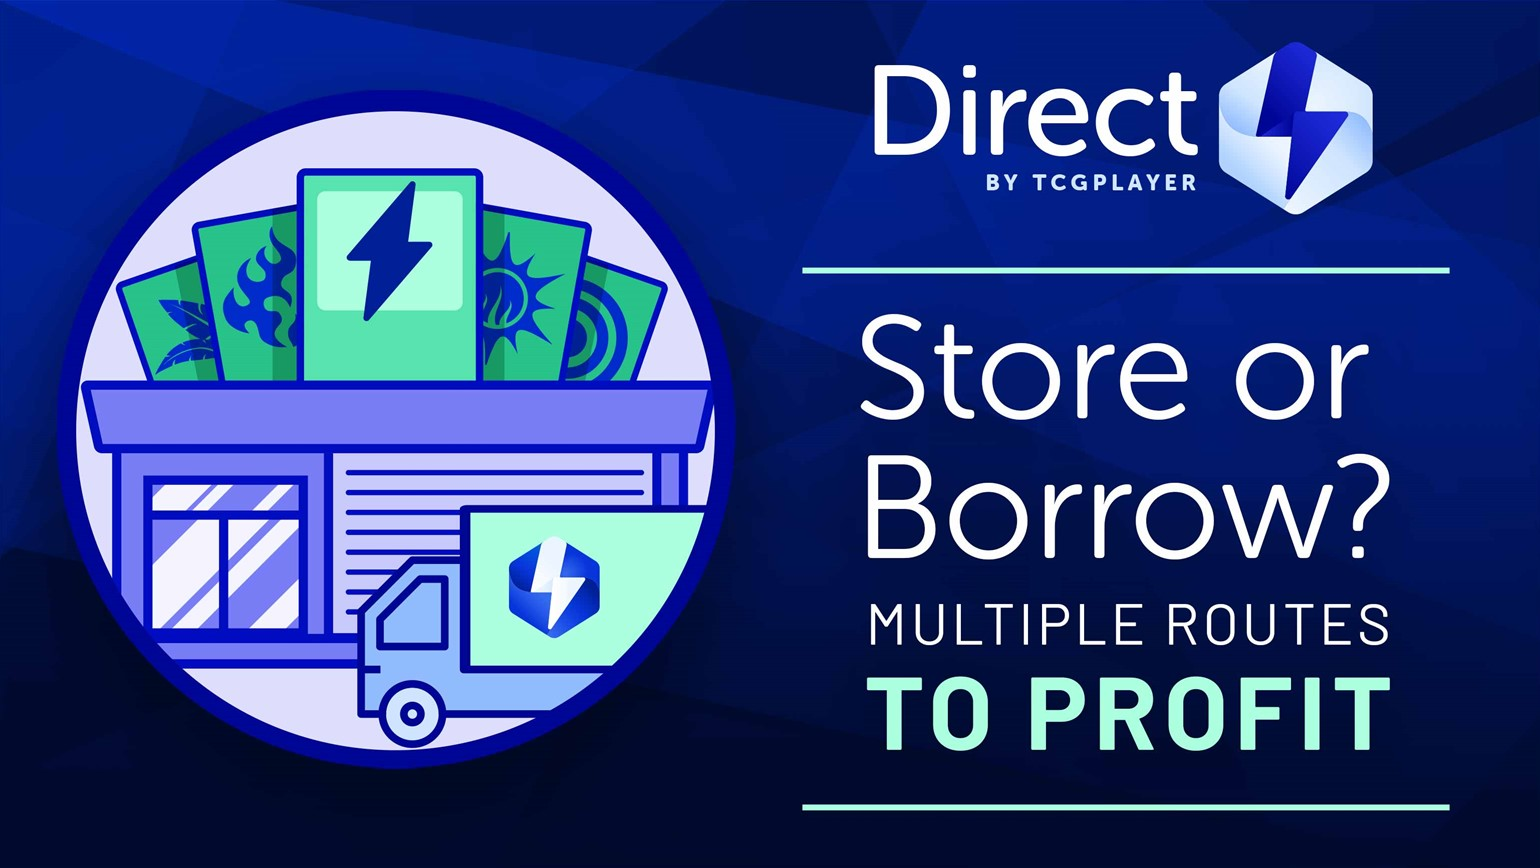 Store or Borrow? Multiple Routes to Profit